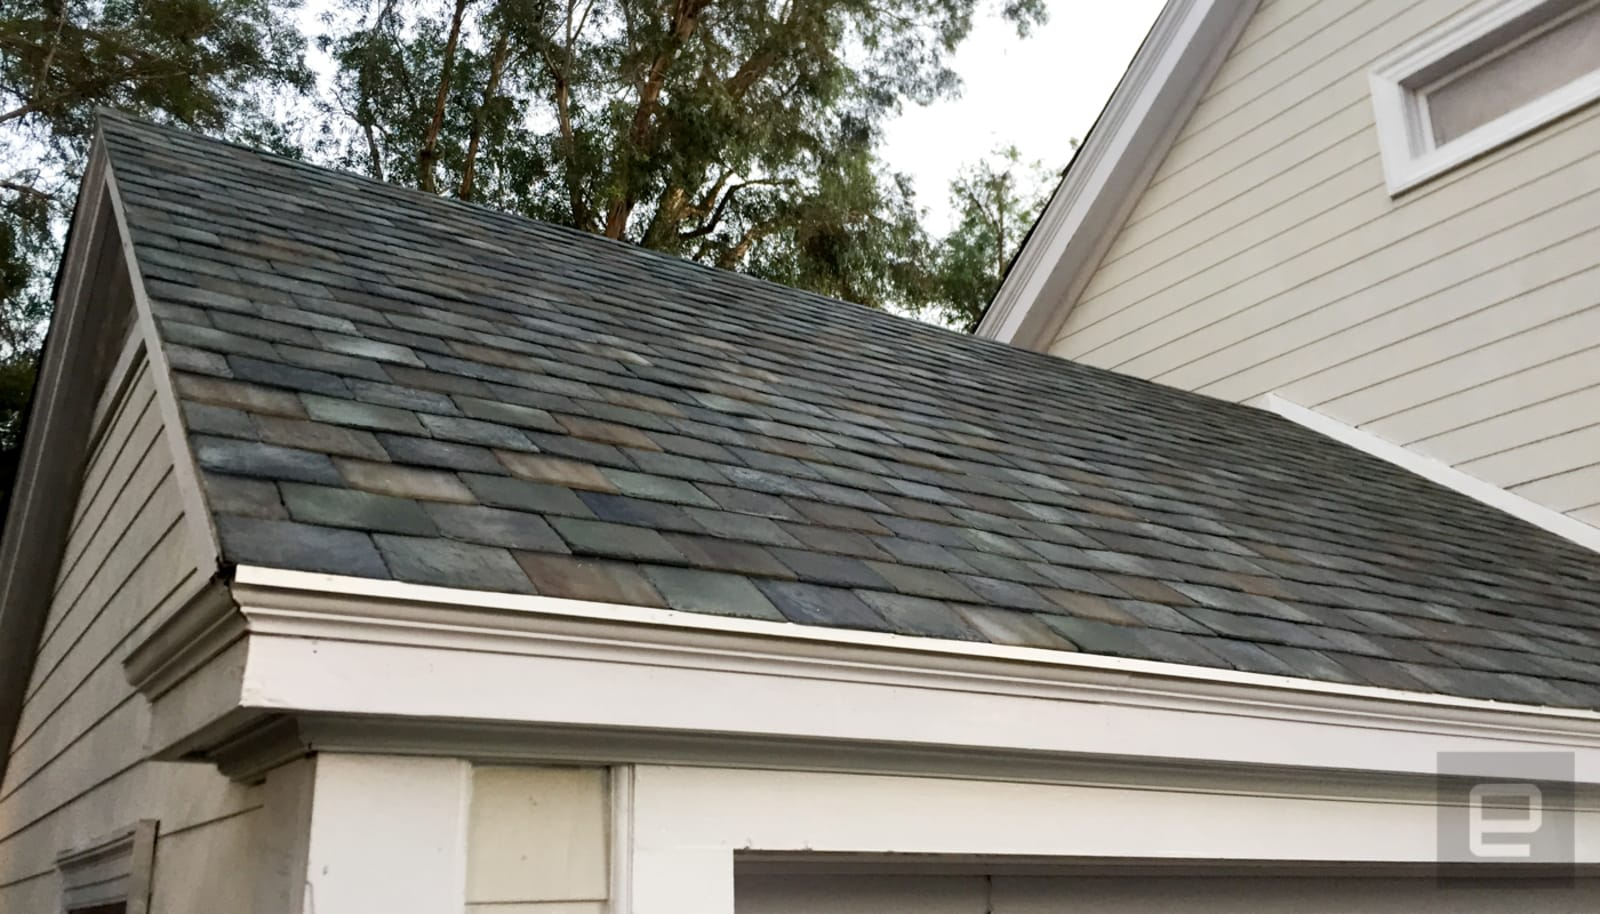 Tesla Solar Roof Shingles >> Tesla Has Finally Begun Manufacturing Solar Roof Tiles